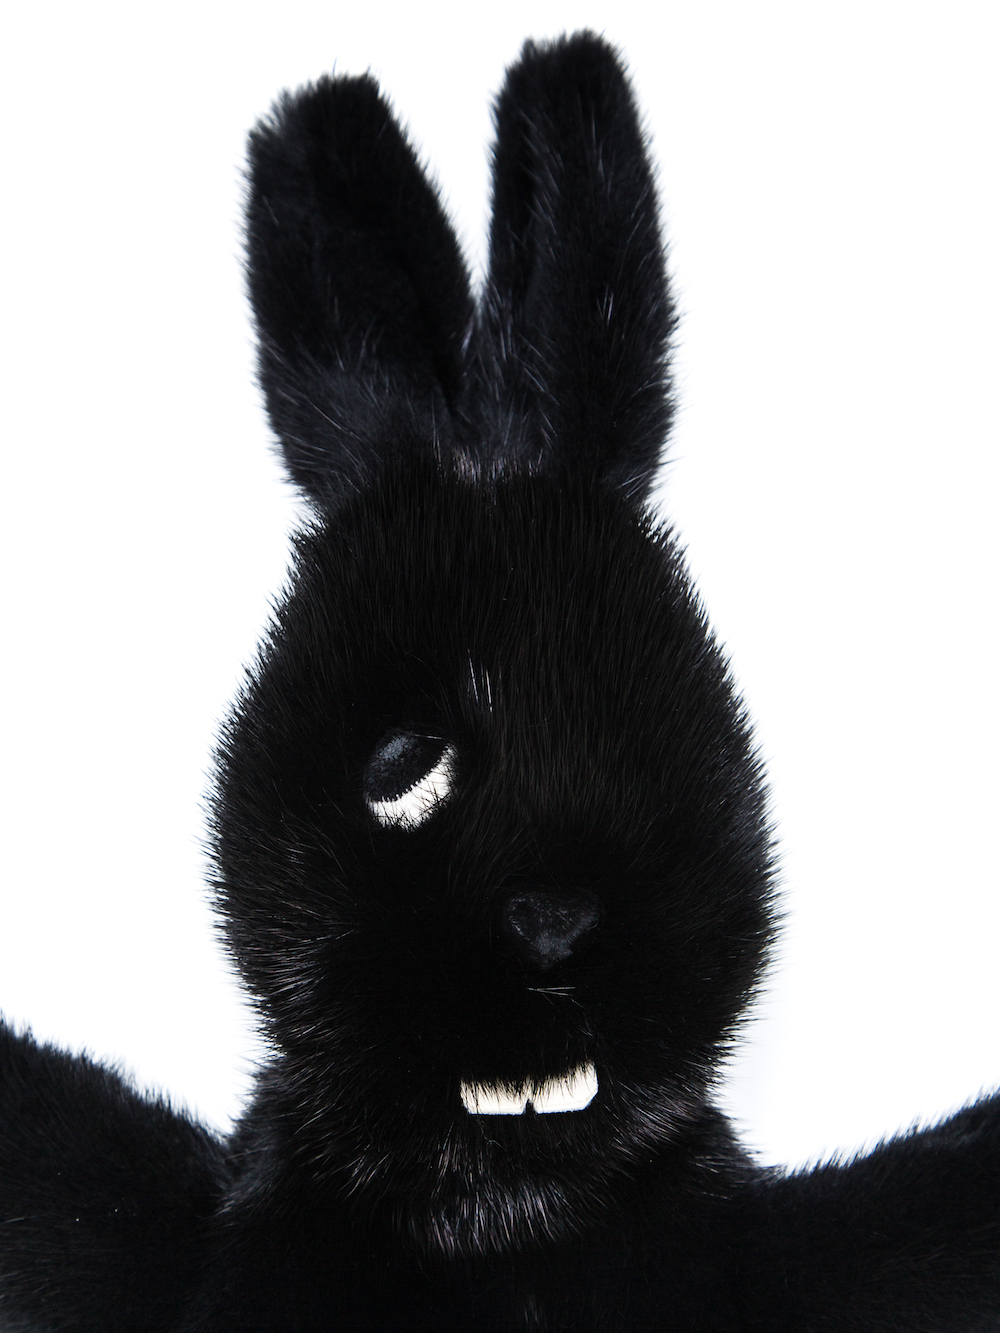 RICK OWENS HUN FAT BUNNY IN BLACK FEATURES A LONG HAIR MINK FUR BODY